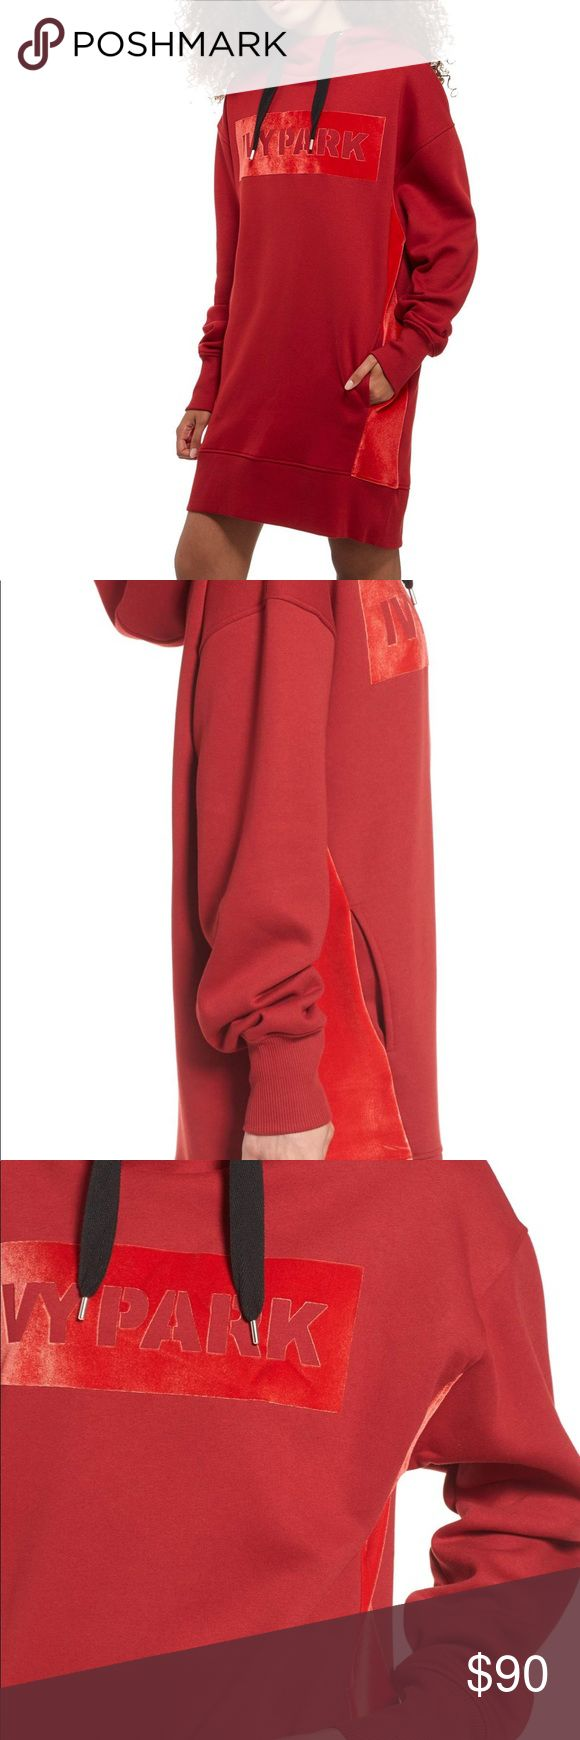 """Ivy park velvet logo oversized dress hoodie XS Ivy Park US sizes shown. True to size. XS=4, S=6, M=8-10, L=10-12, XL=12-14. DETAILS & CARE Contrasting scarlet side panels and a chest logo in fiery velvet add understated cool to this roomy, chili-red hoodie dress in supersoft brushback jersey. 33"""" length (size Medium) Funnel neck Drawstring hood Long sleeves with ribbed cuffs Front slant pockets 51% polyester, 49% cotton with 98% cotton, 2% spandex rib trim Machine wash, dry flat ivy park…"""